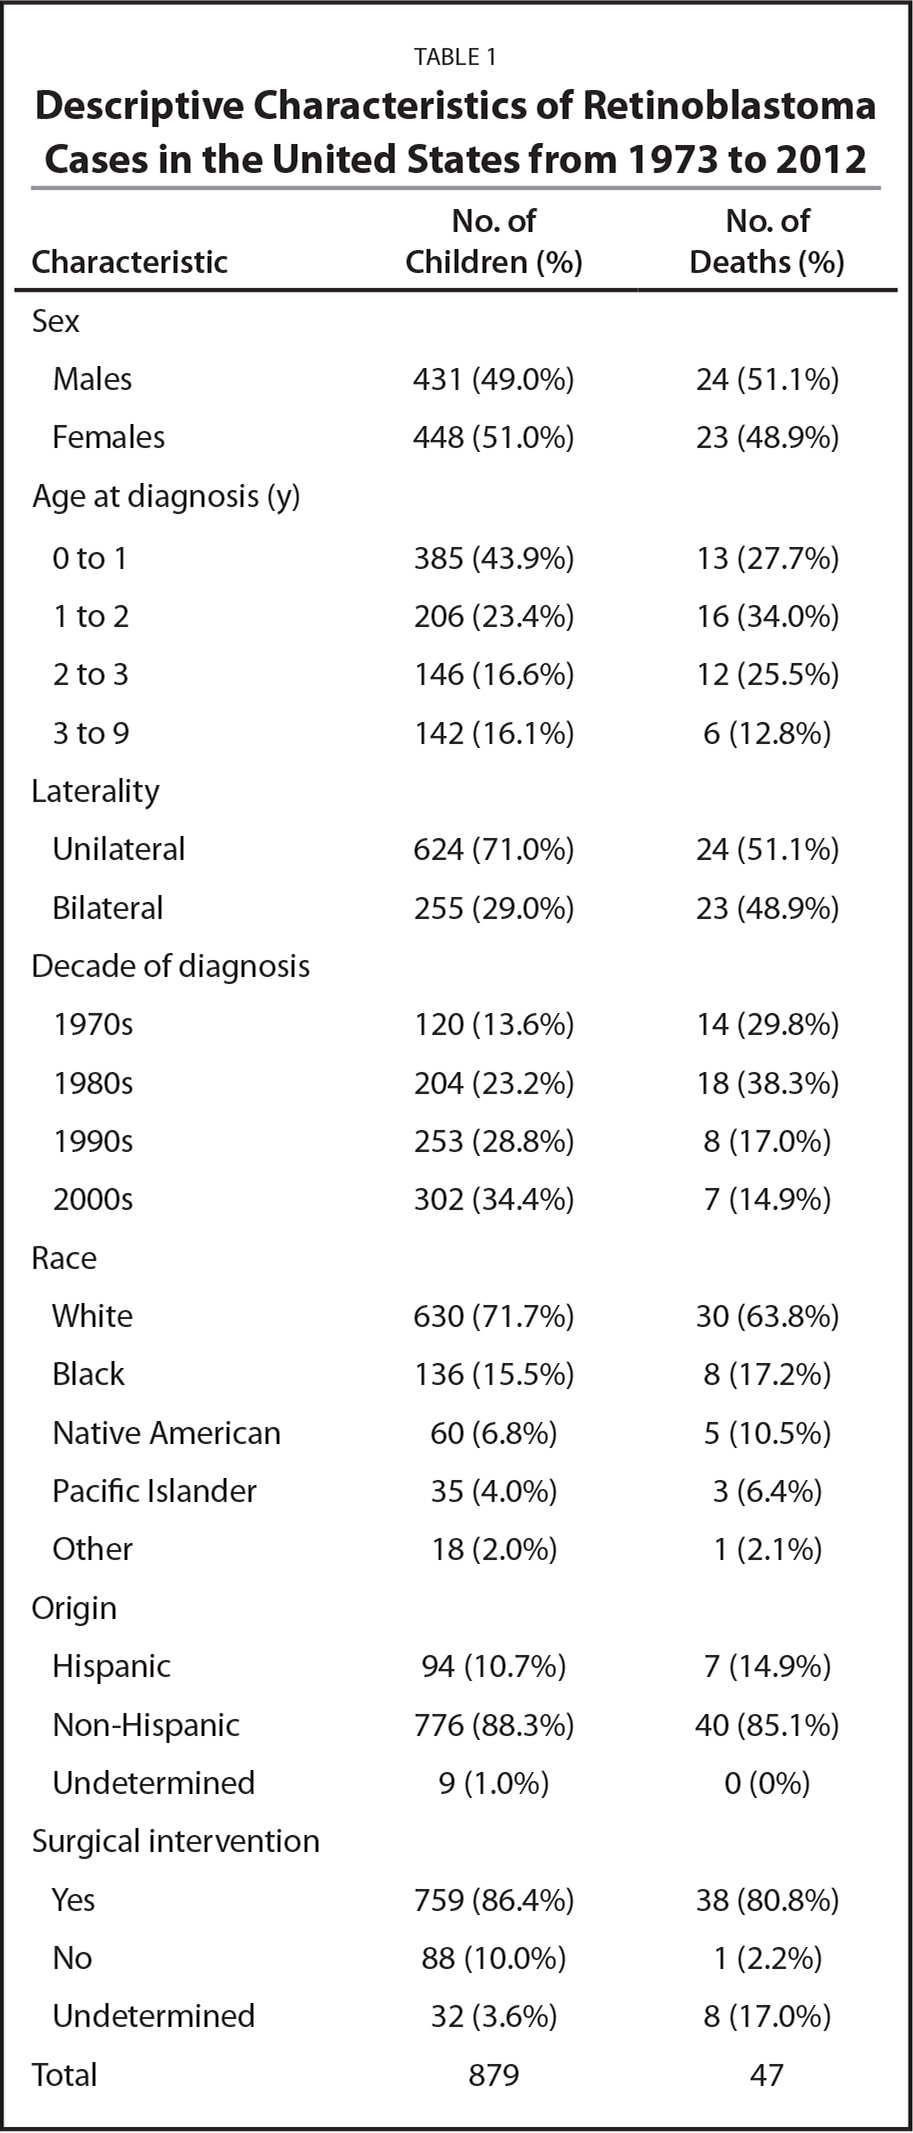 Descriptive Characteristics of Retinoblastoma Cases in the United States from 1973 to 2012